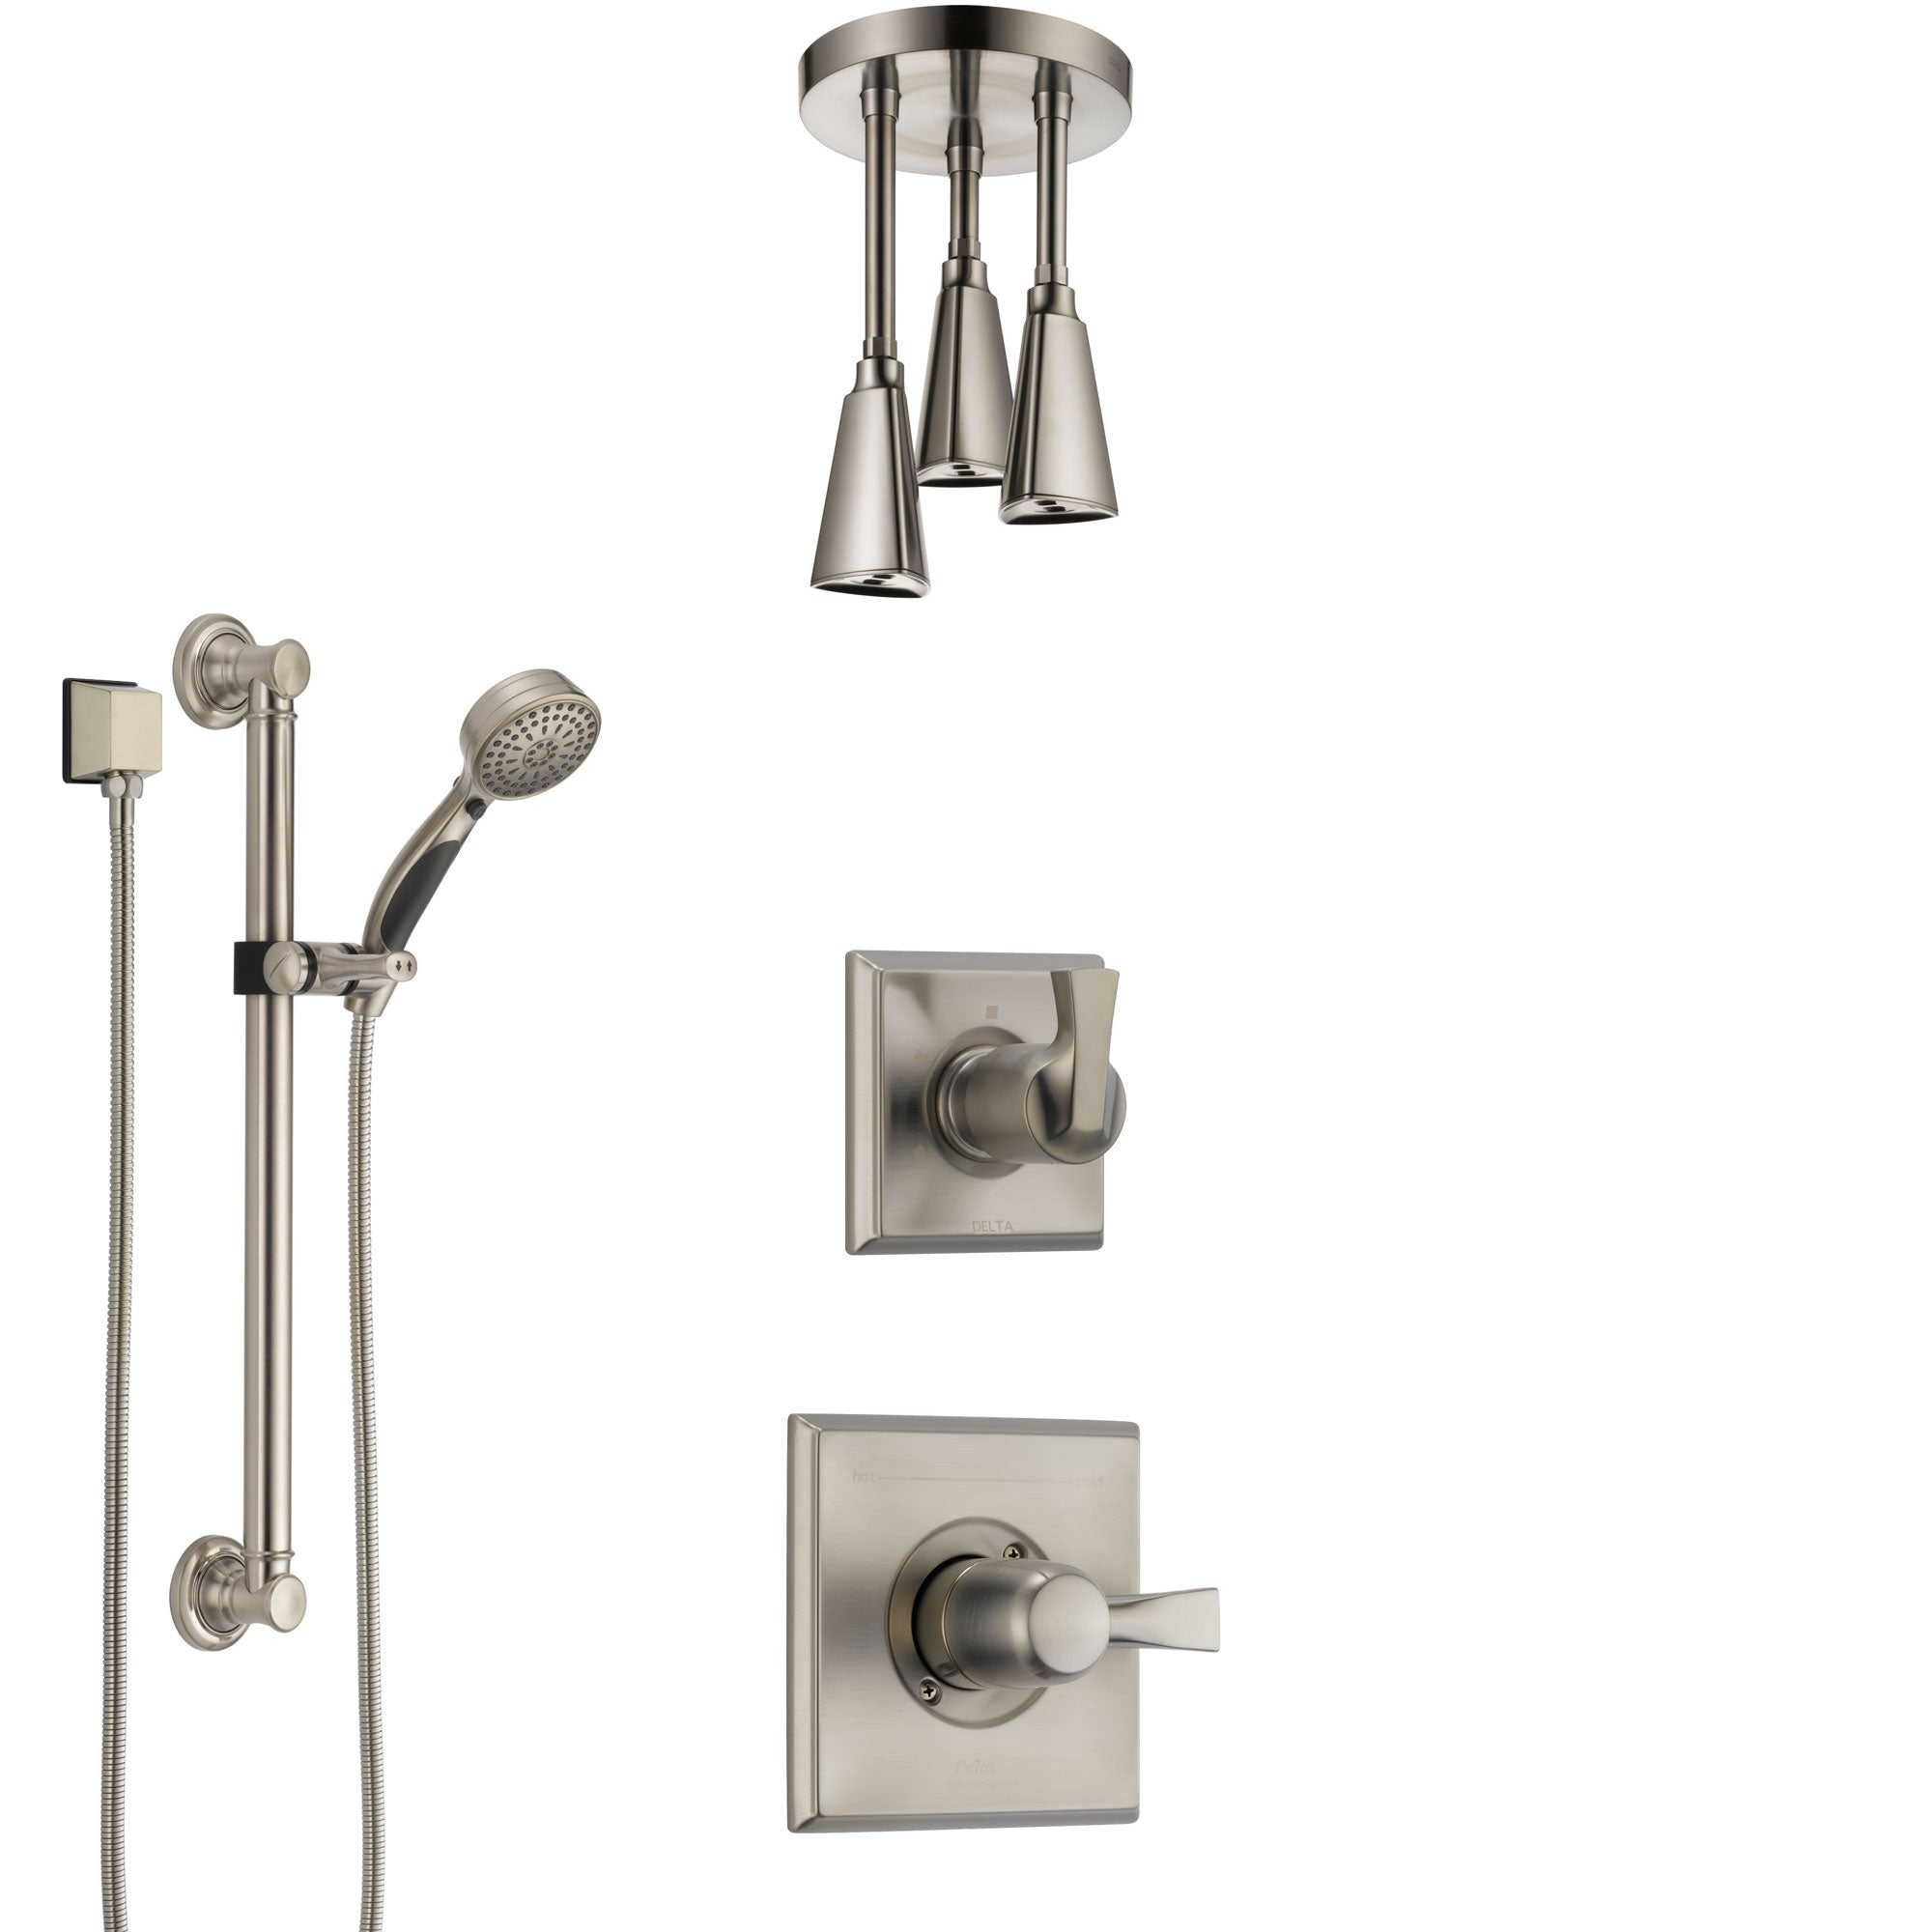 Delta Dryden Stainless Steel Finish Shower System with Control Handle, Diverter, Ceiling Mount Showerhead, and Hand Shower with Grab Bar SS1451SS3